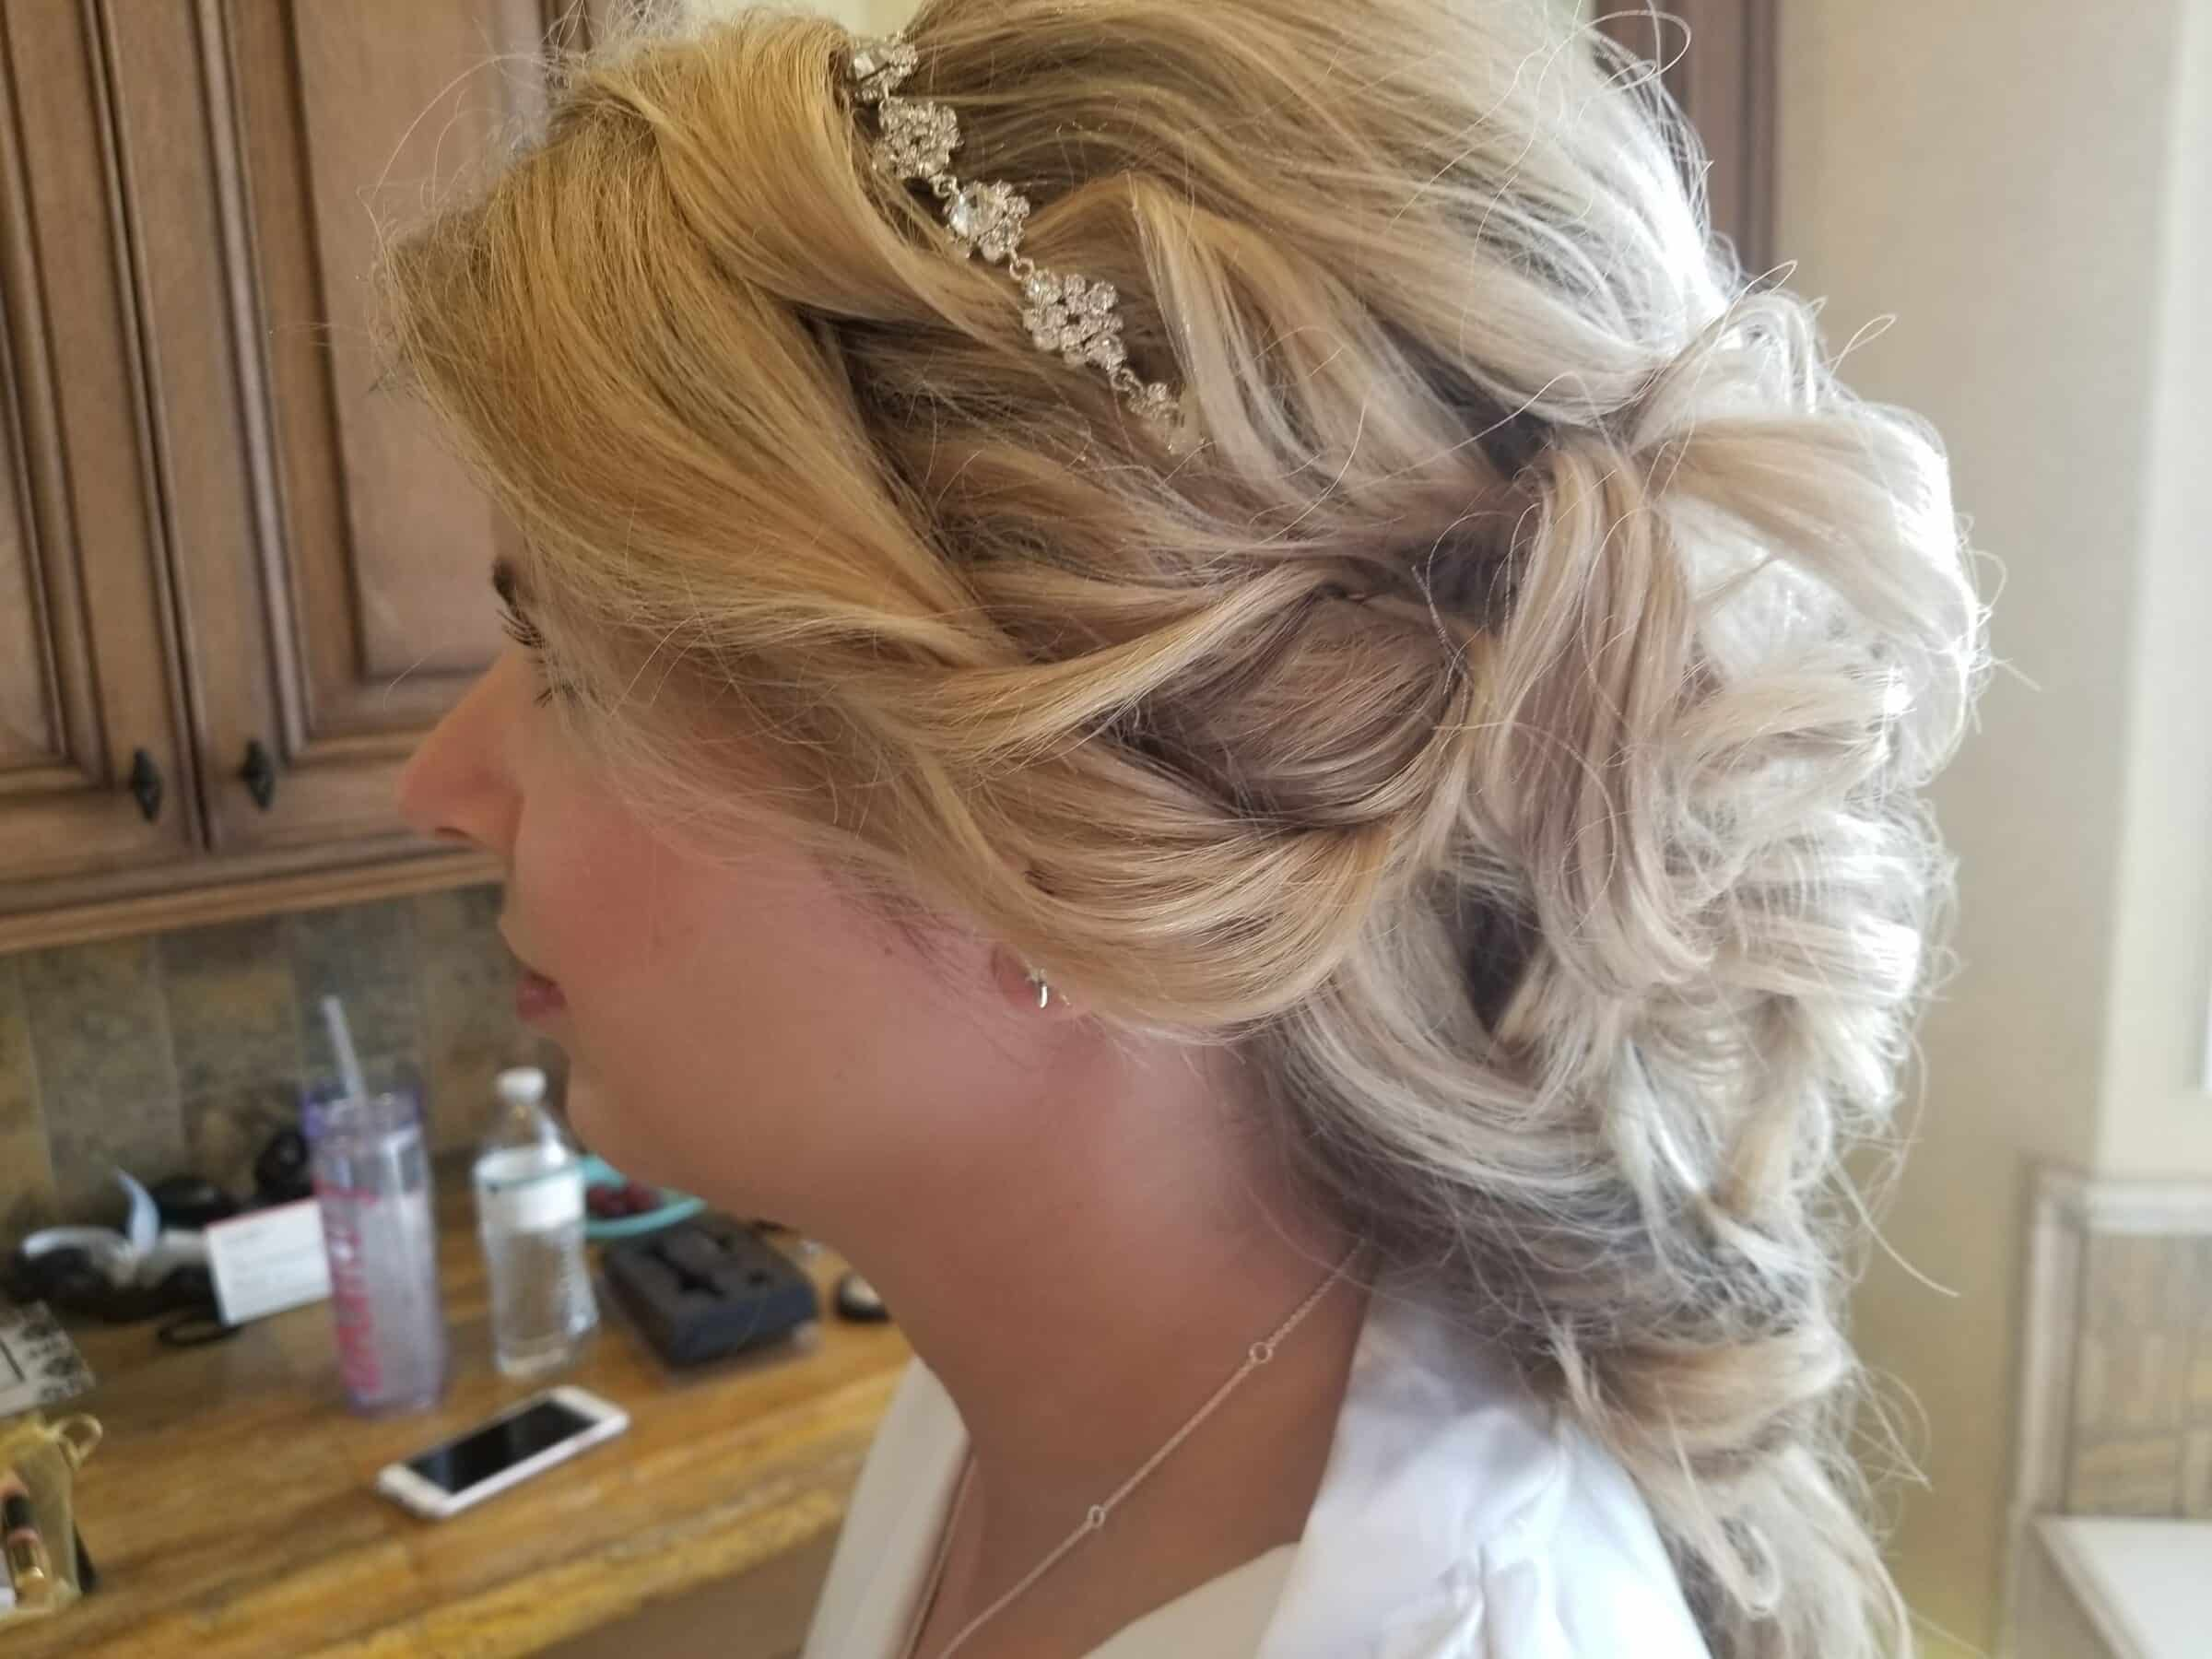 Updo - Destin Hair Studio